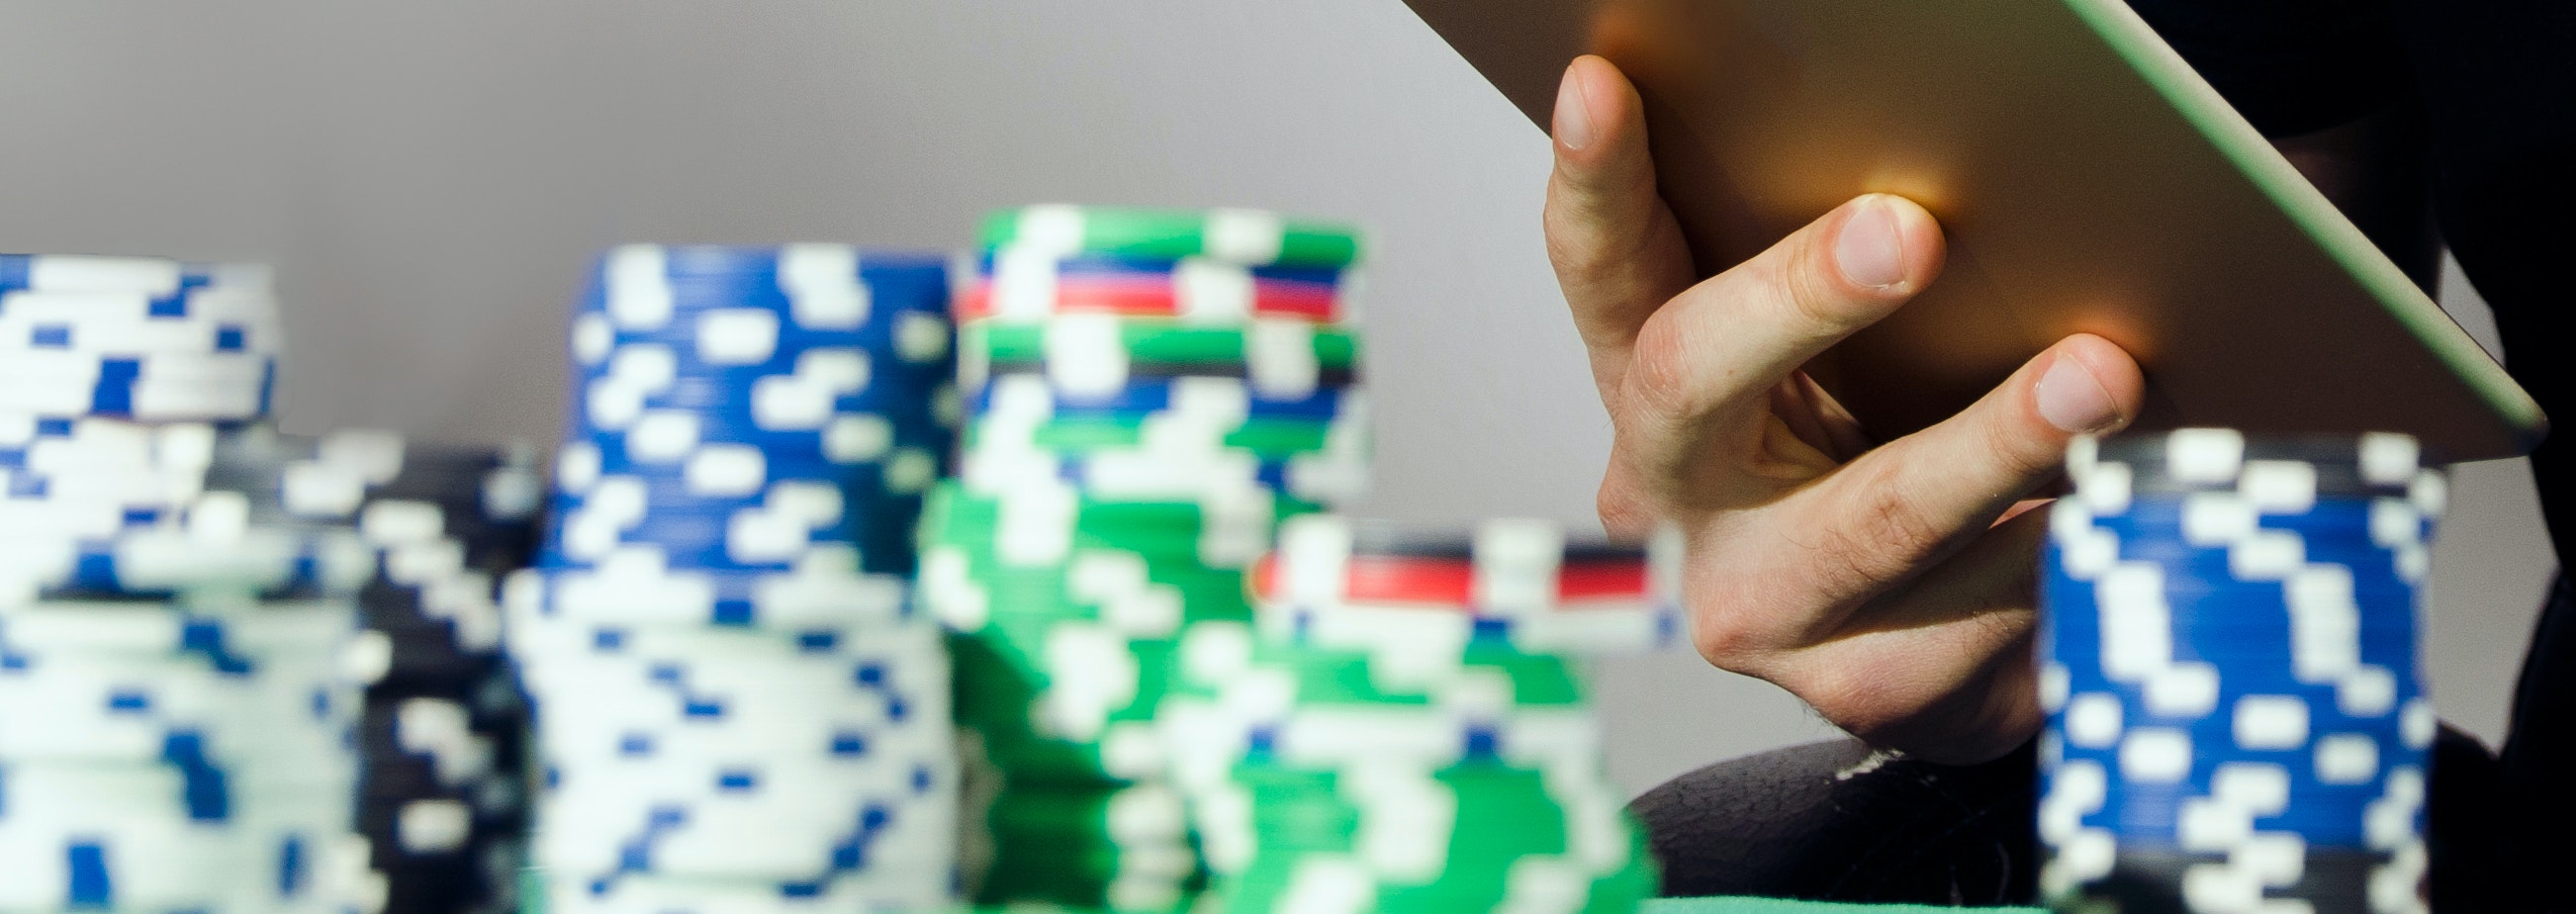 How to practice poker by yourself - DIY poker training